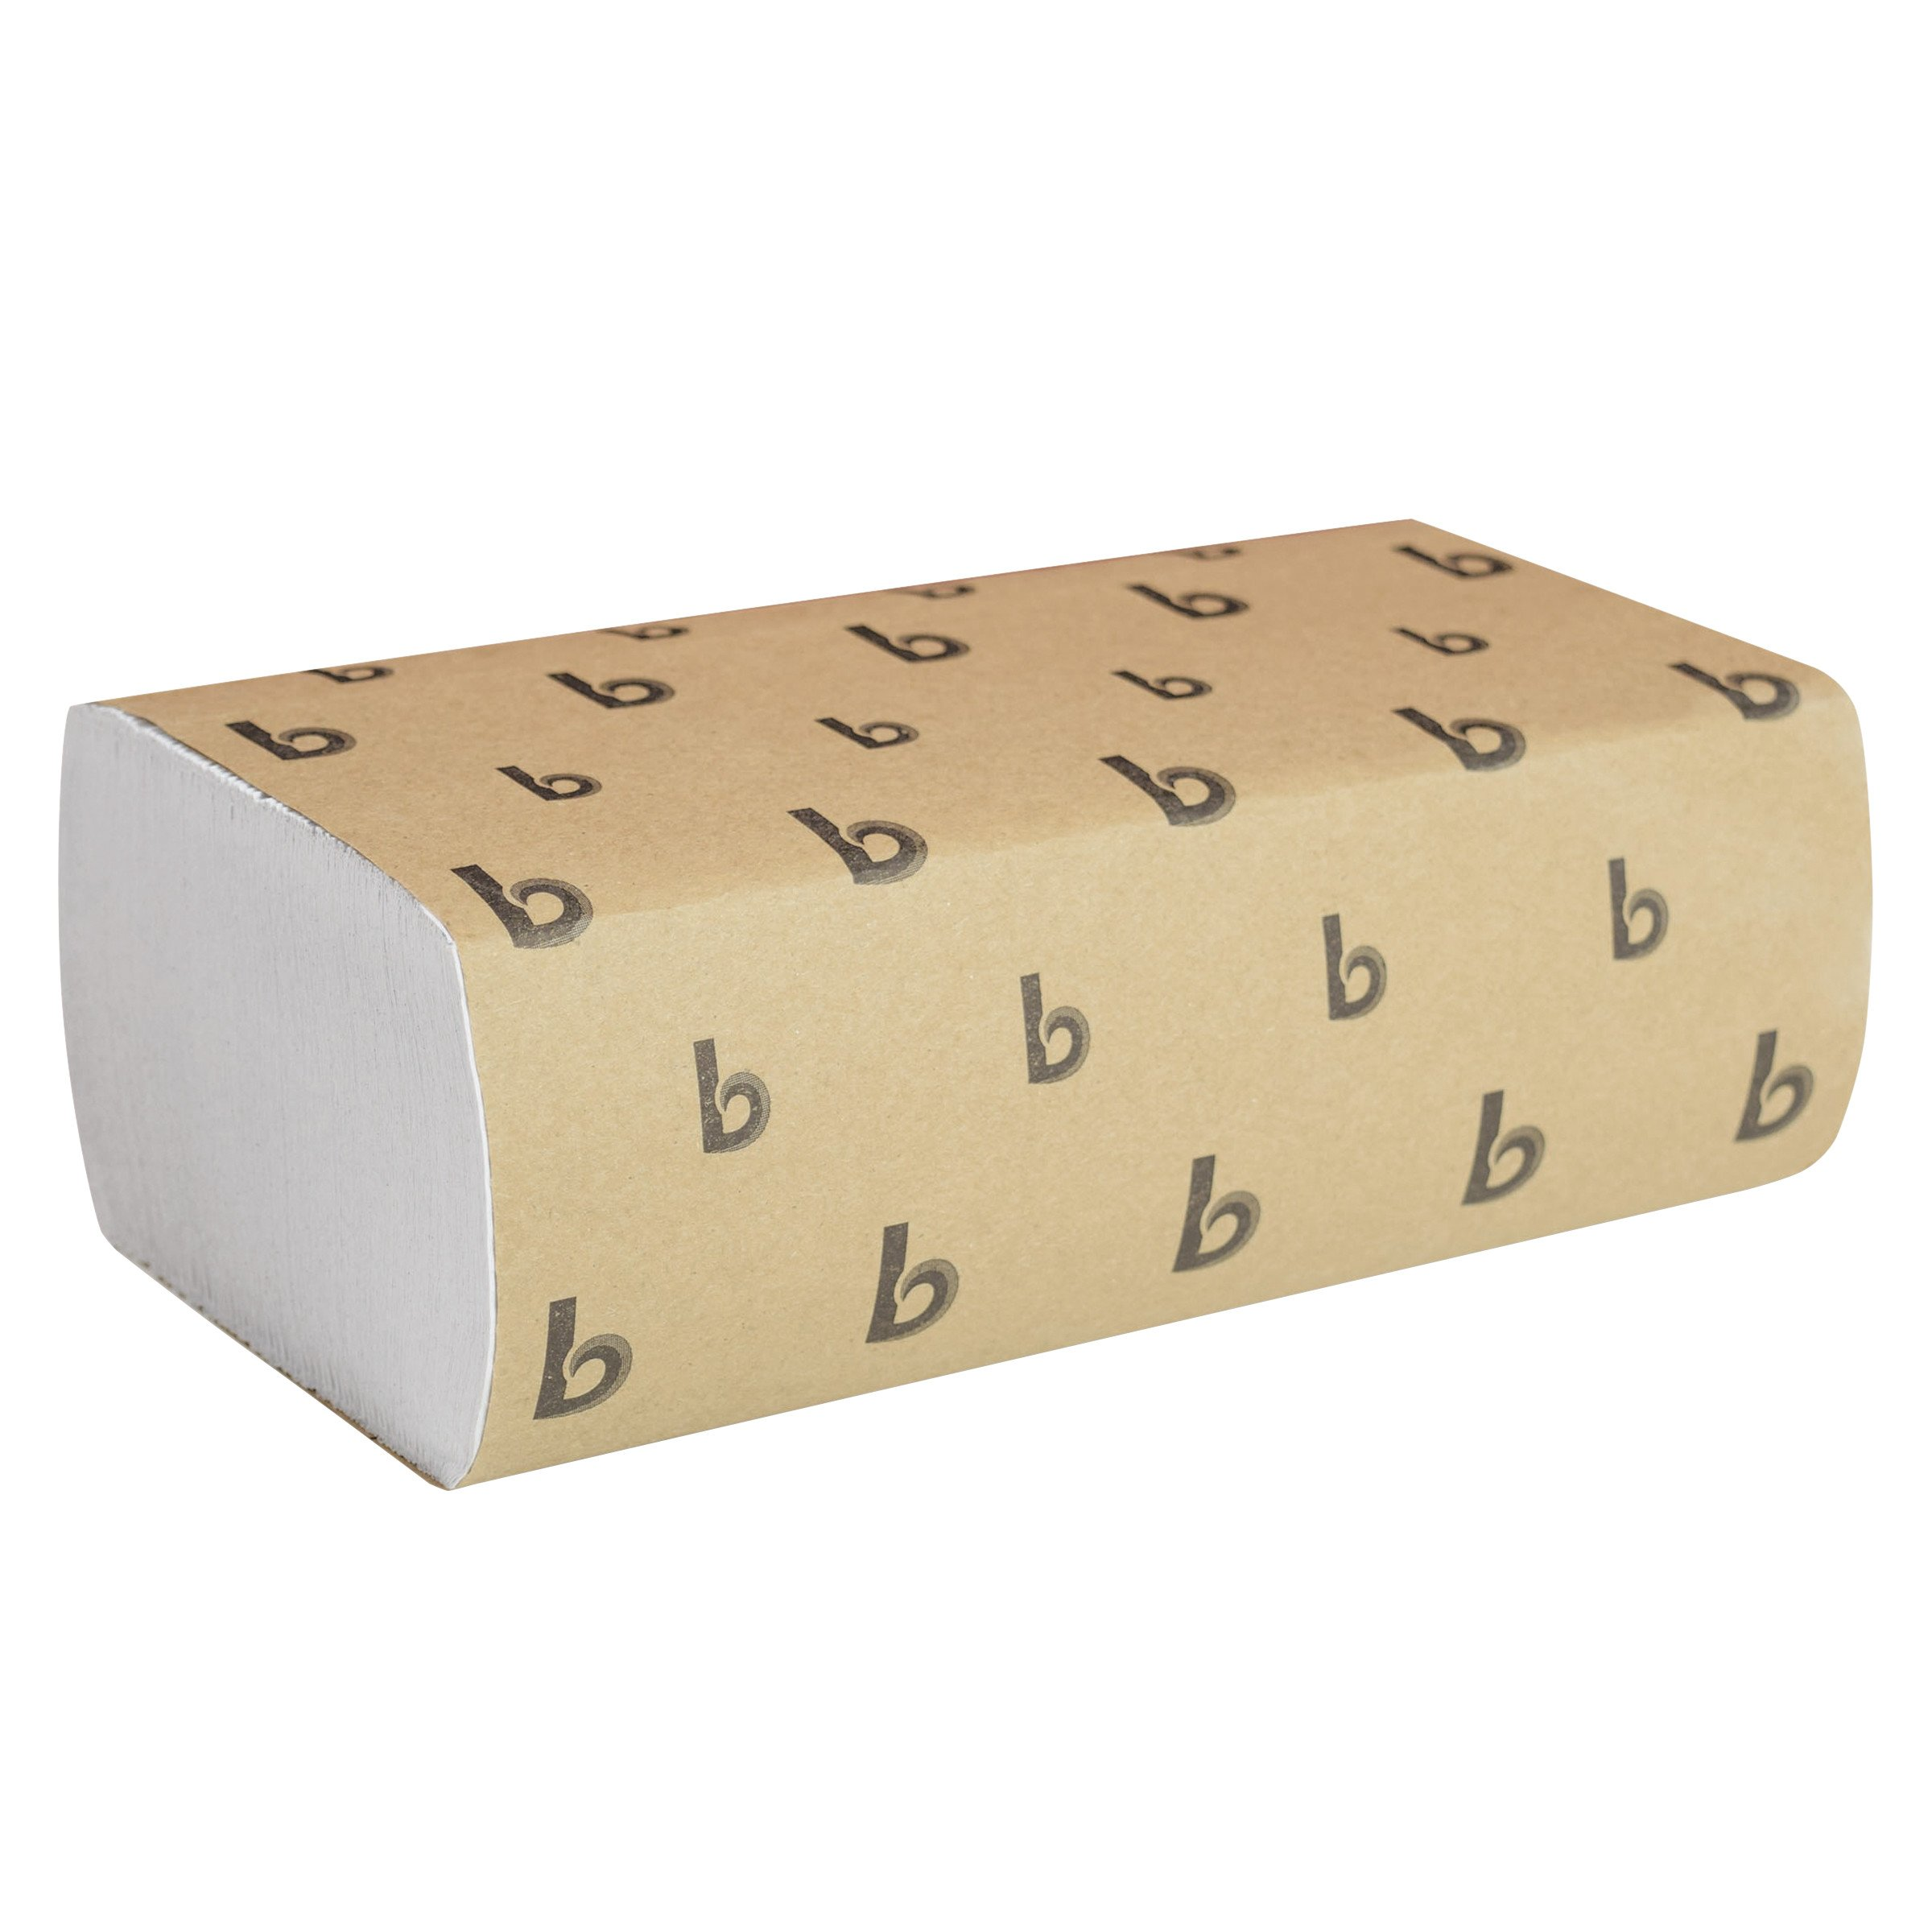 Boardwalk 6200 Multifold Paper Hand Towel 9'' X 9.5'' Bleached White (16 Packs of 250)